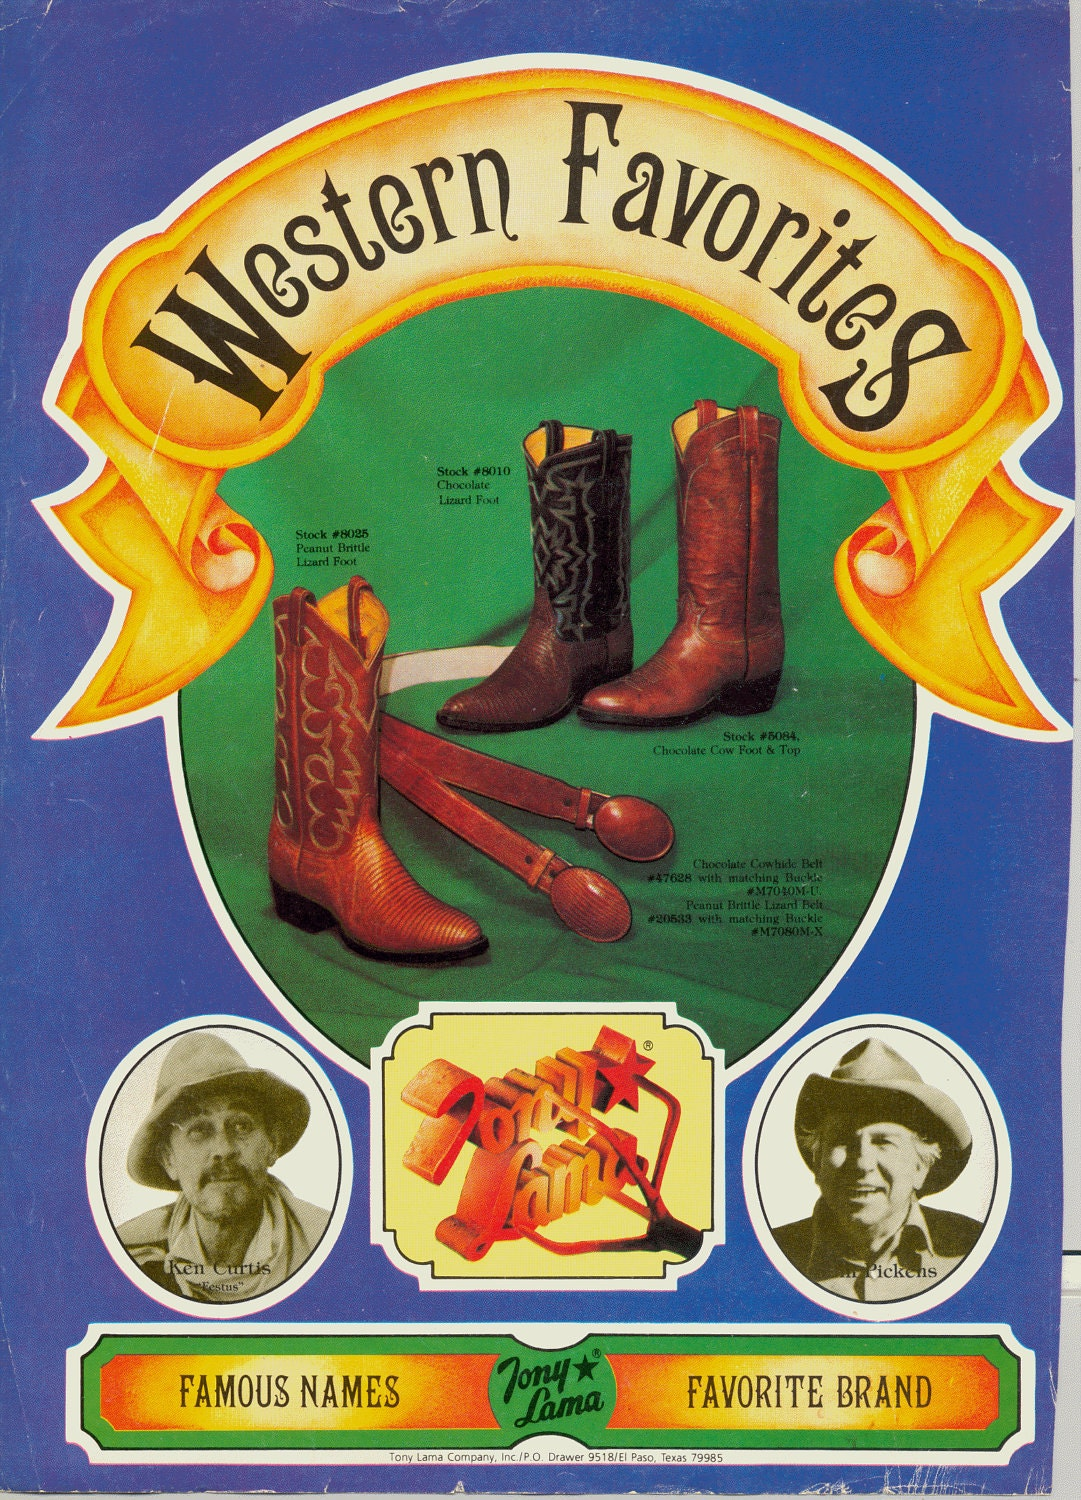 Vintage Magazine Ad for Western Favorites Tony Lama Cowboy Boots